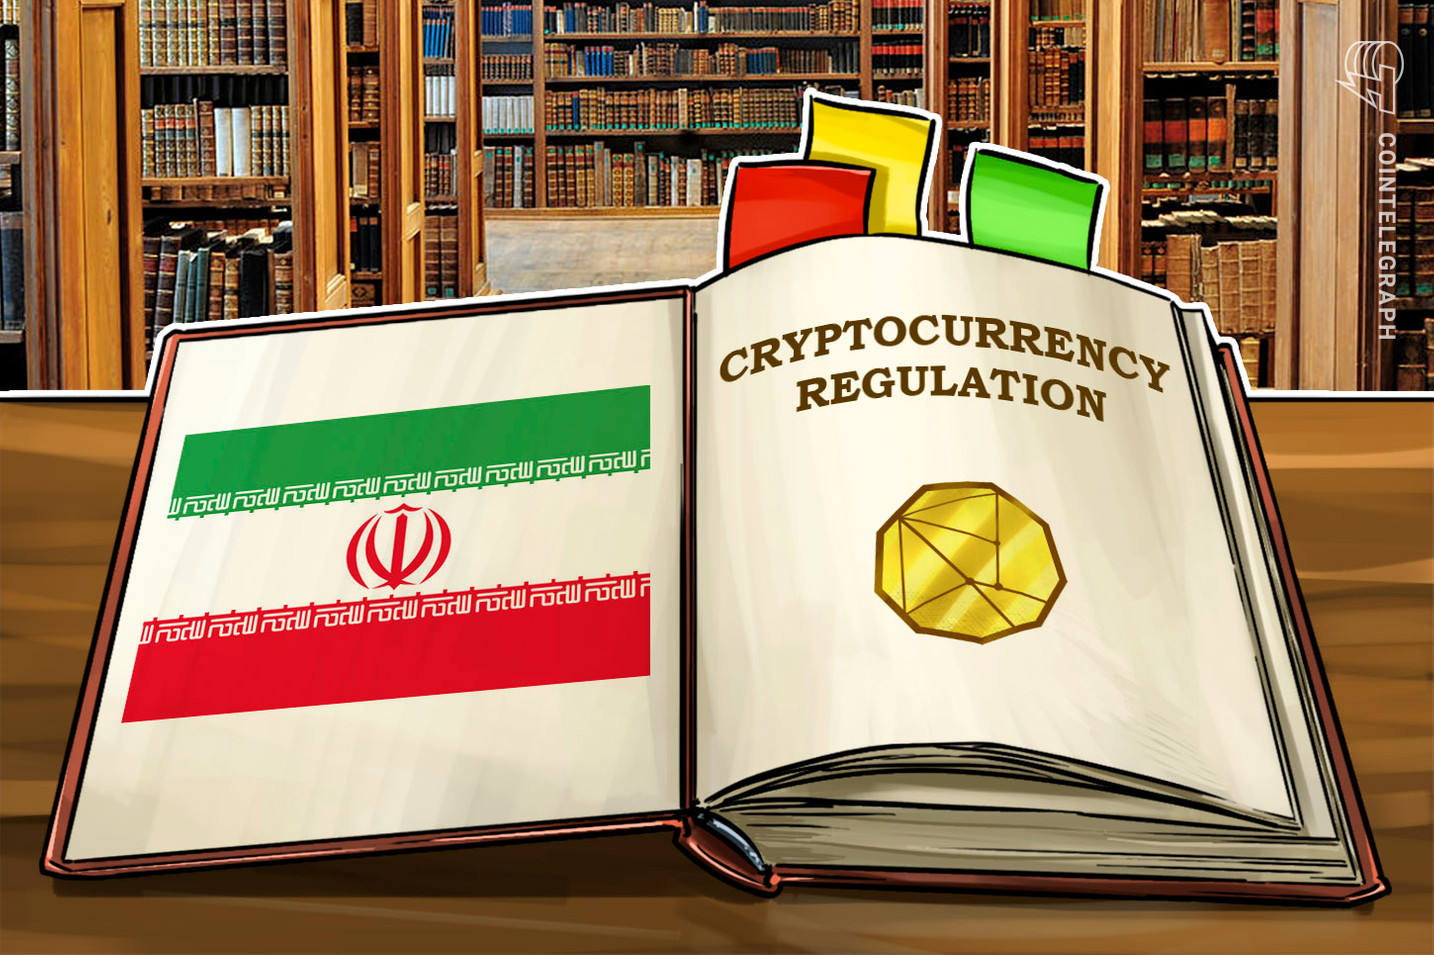 Iran: Central Bank Will Consider Expert Input Before Enacting Crypto Regulations